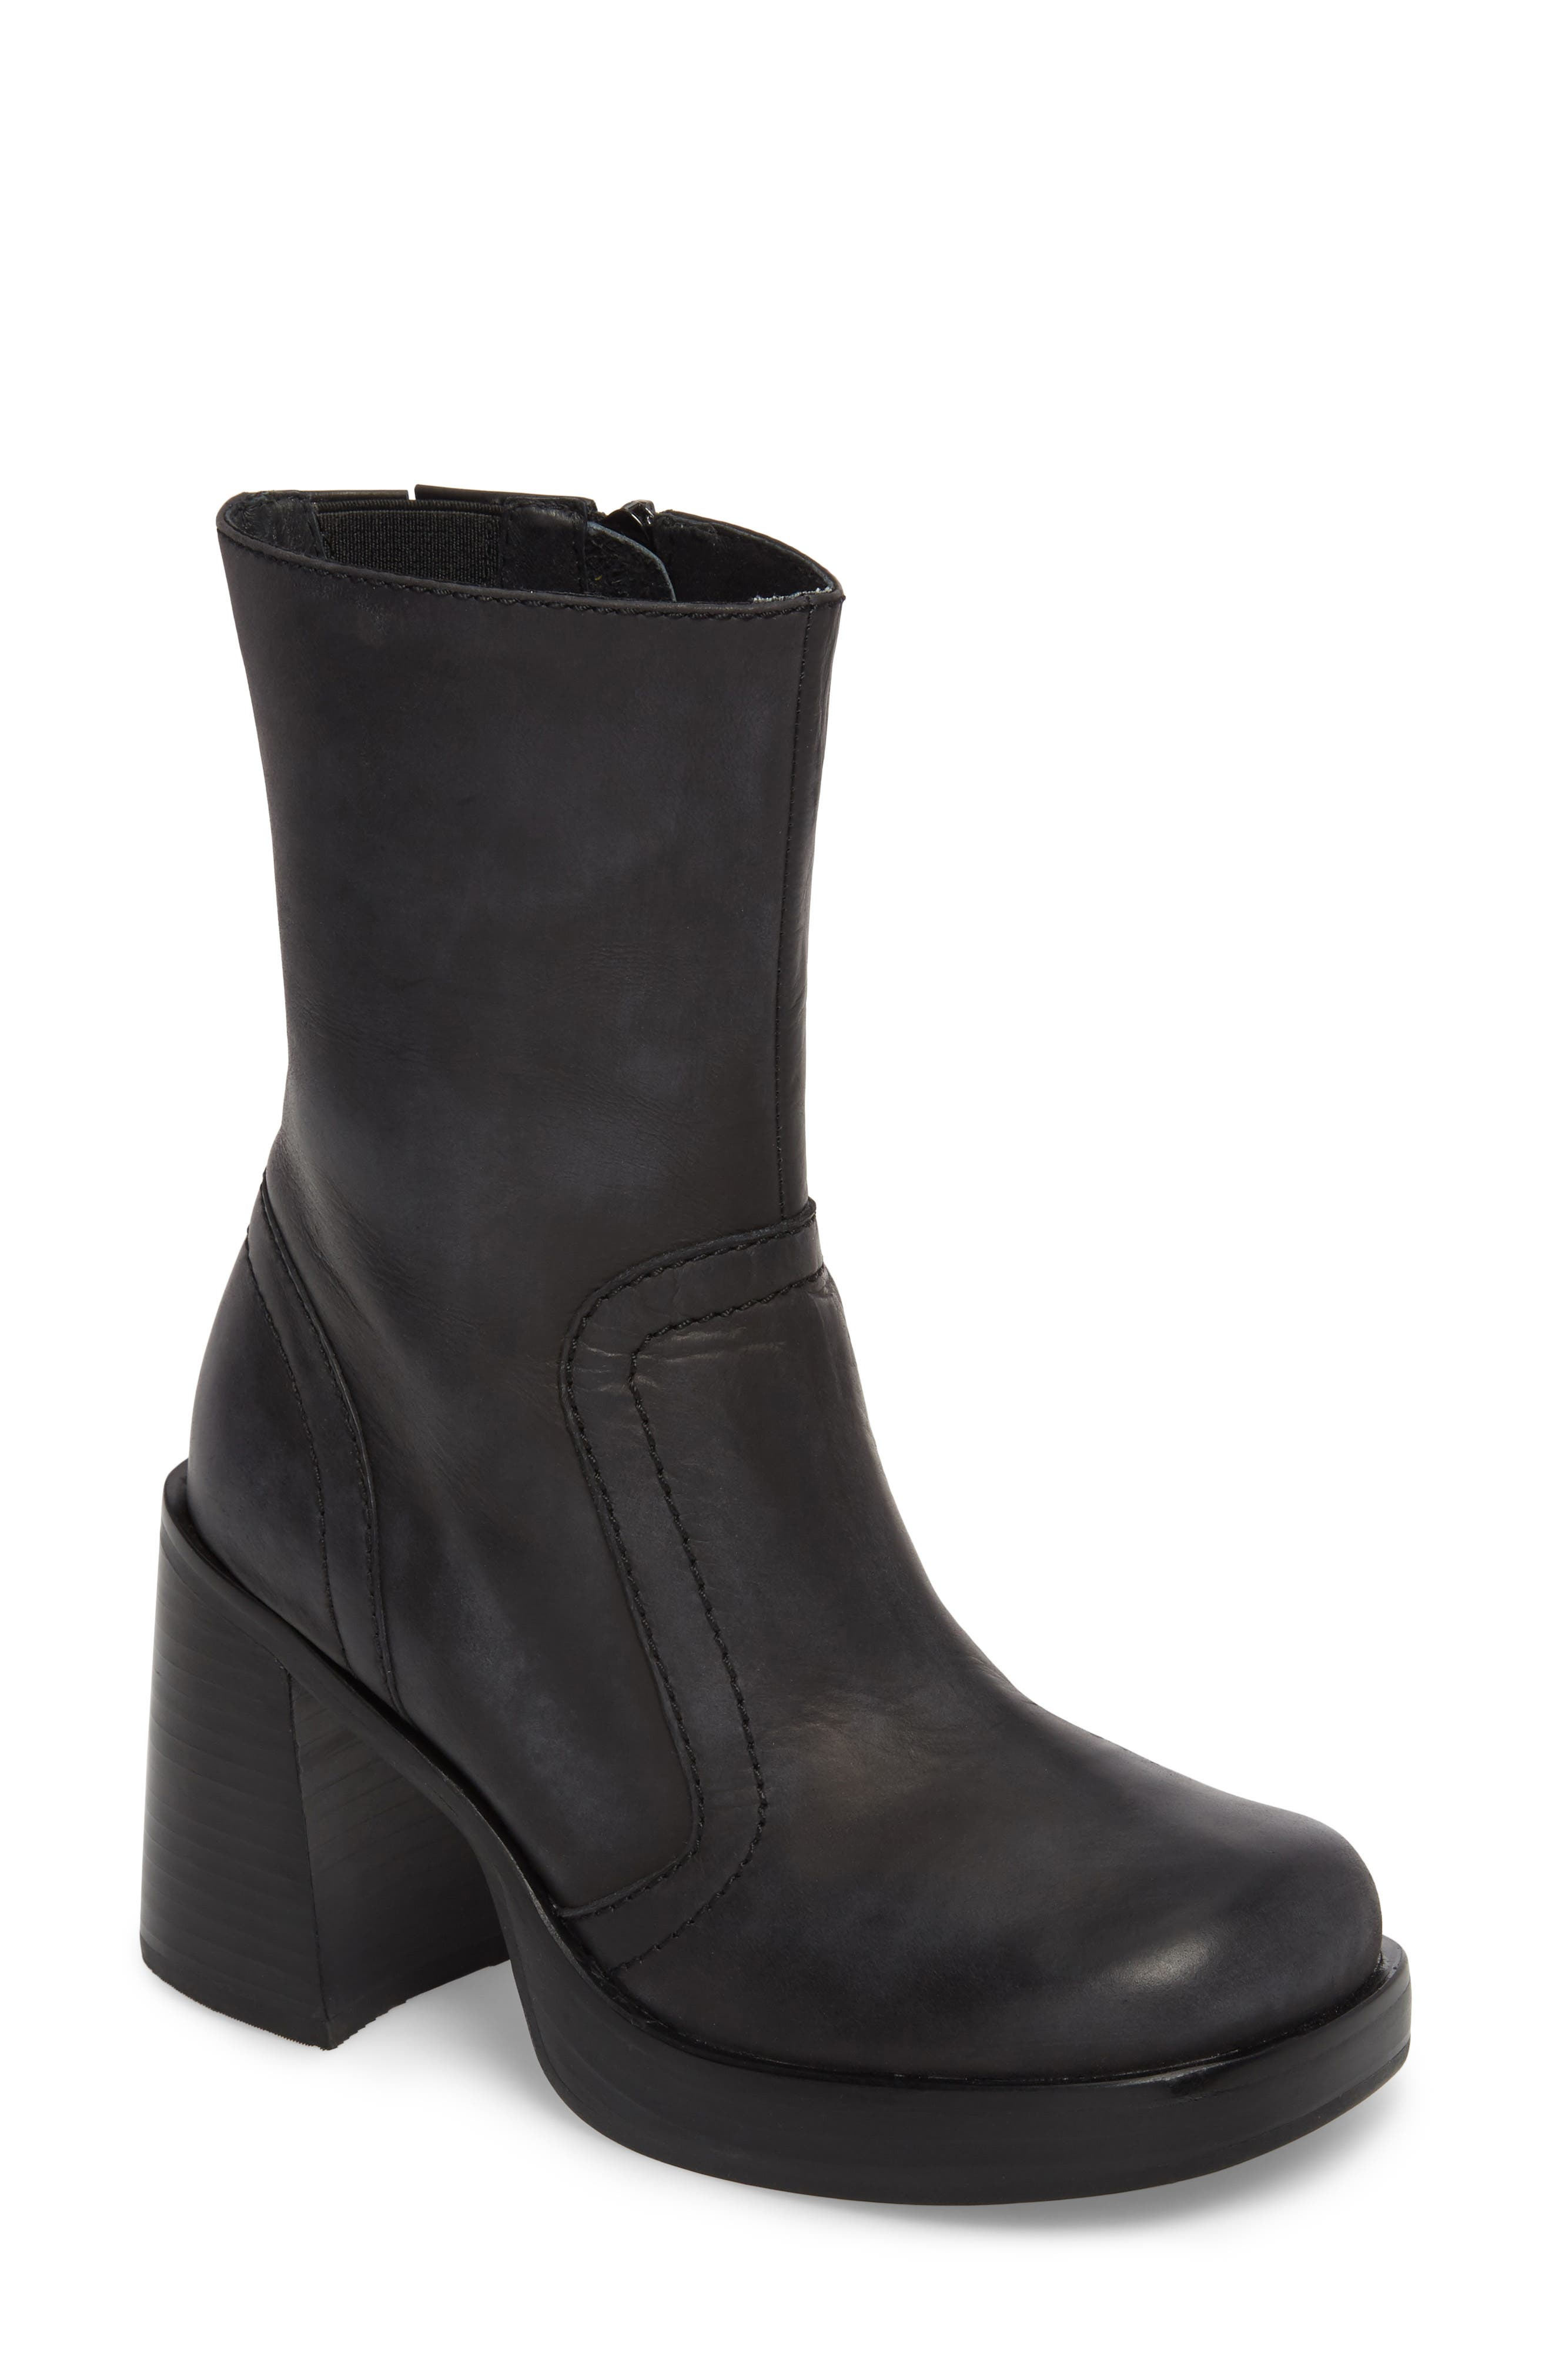 Keeley Boot,                         Main,                         color,